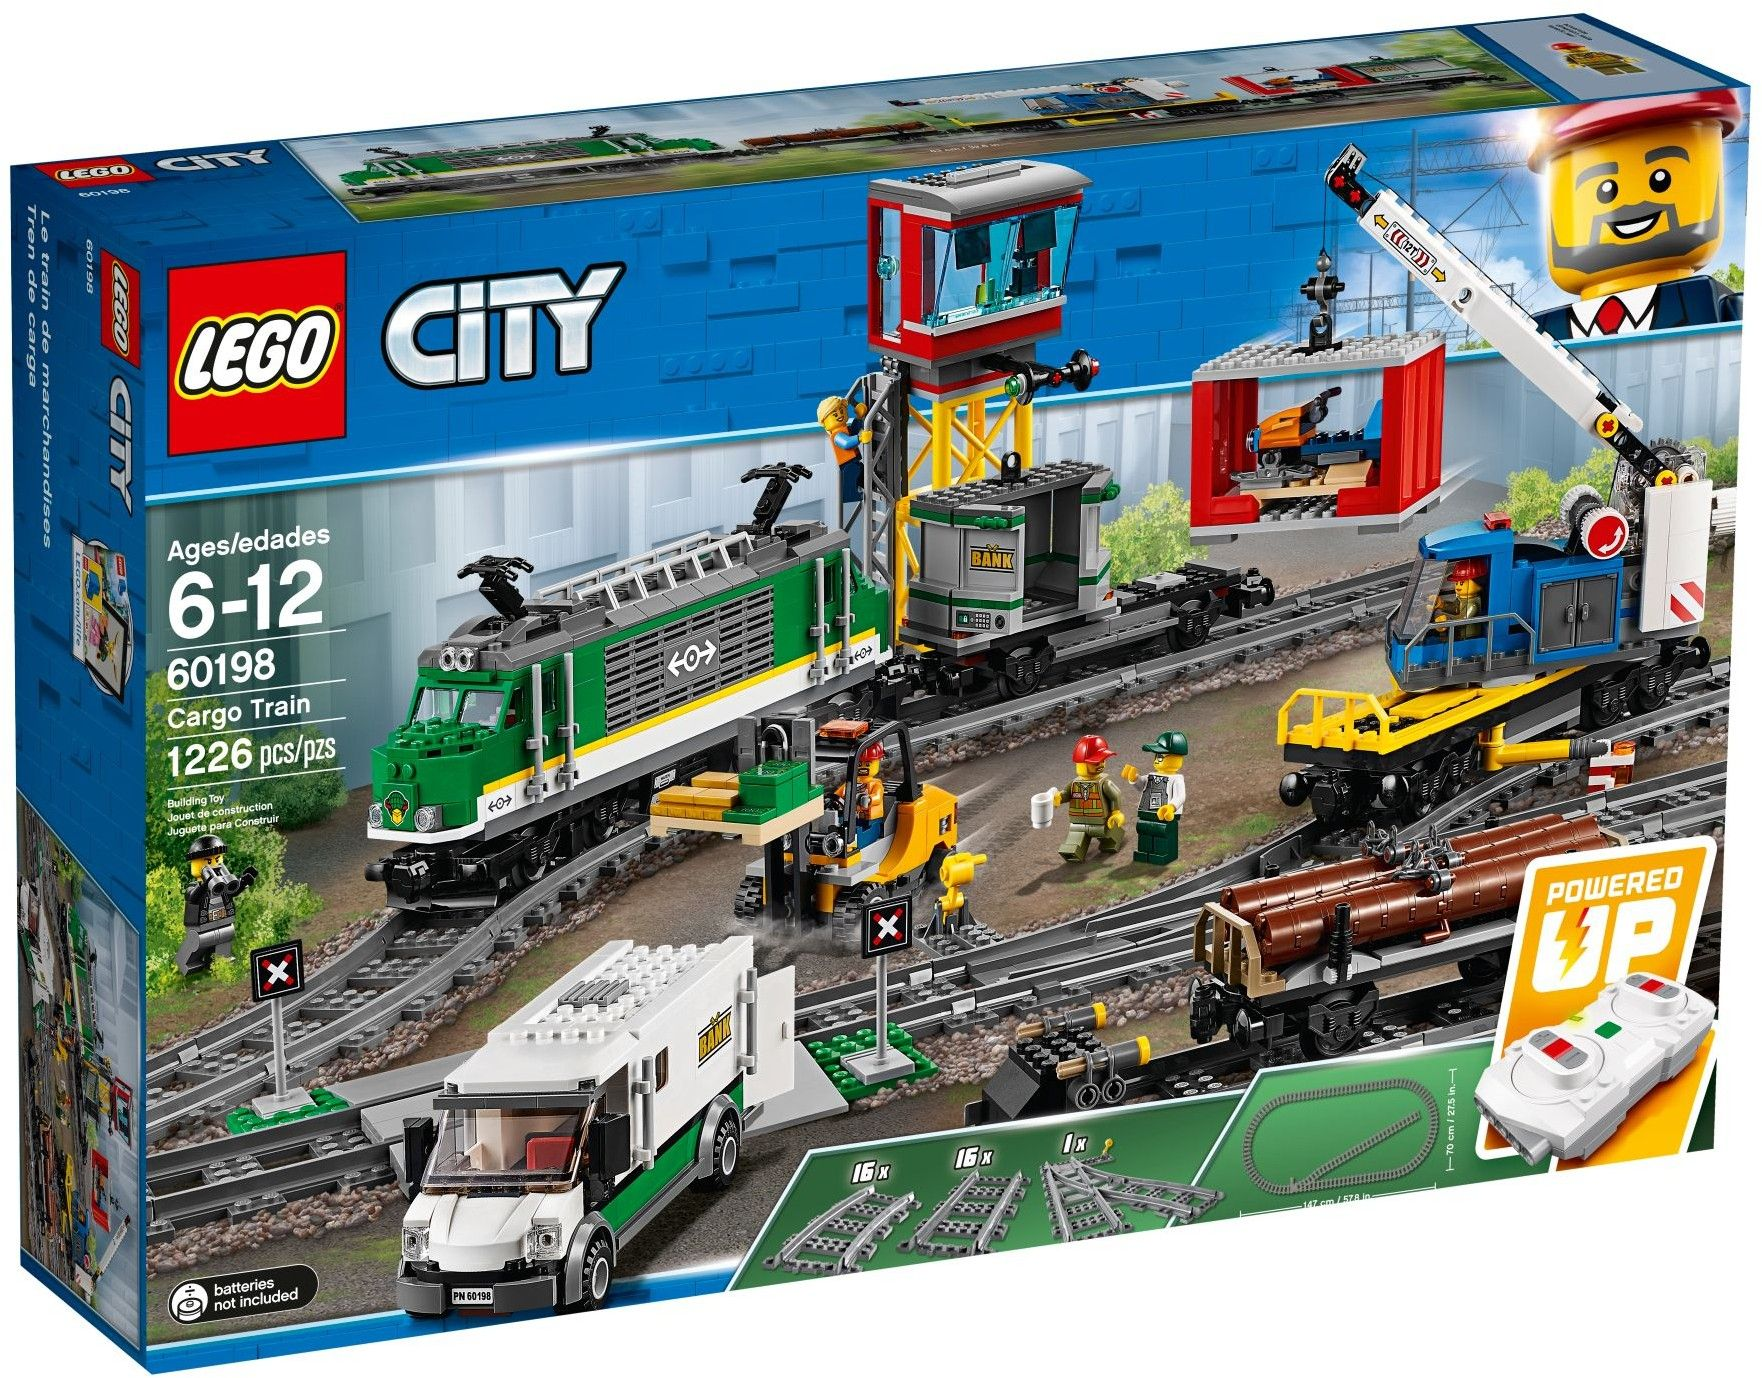 View Lego Instructions For Cargo Train Set Number 60198 To Help You Build These Lego Sets Lego City Cargo Train Lego City Train Lego City